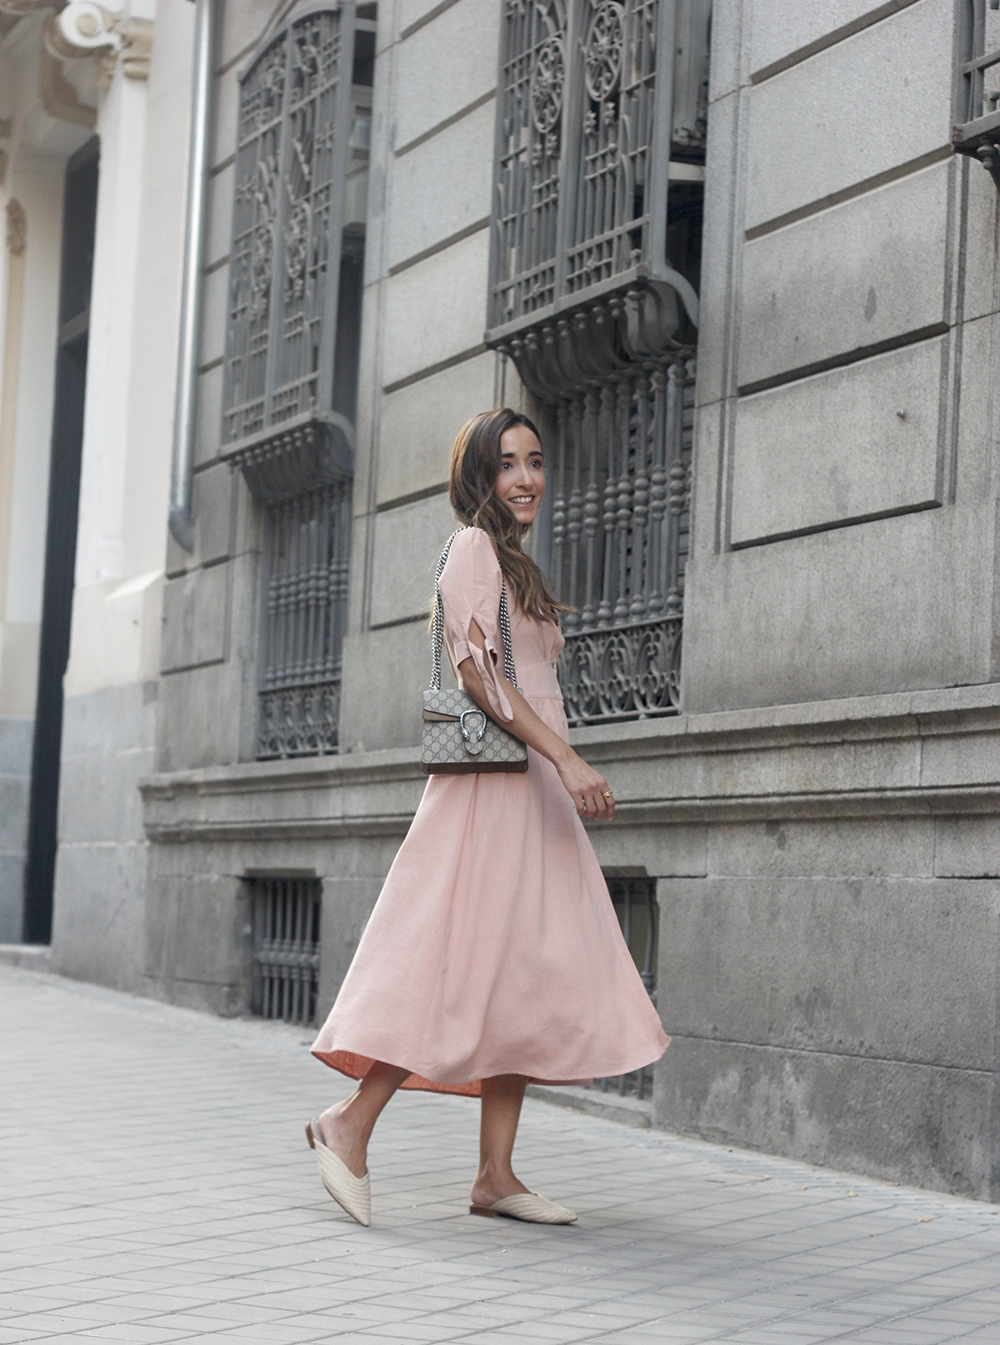 pink midi dress mules gucci bag outfit street style 201802